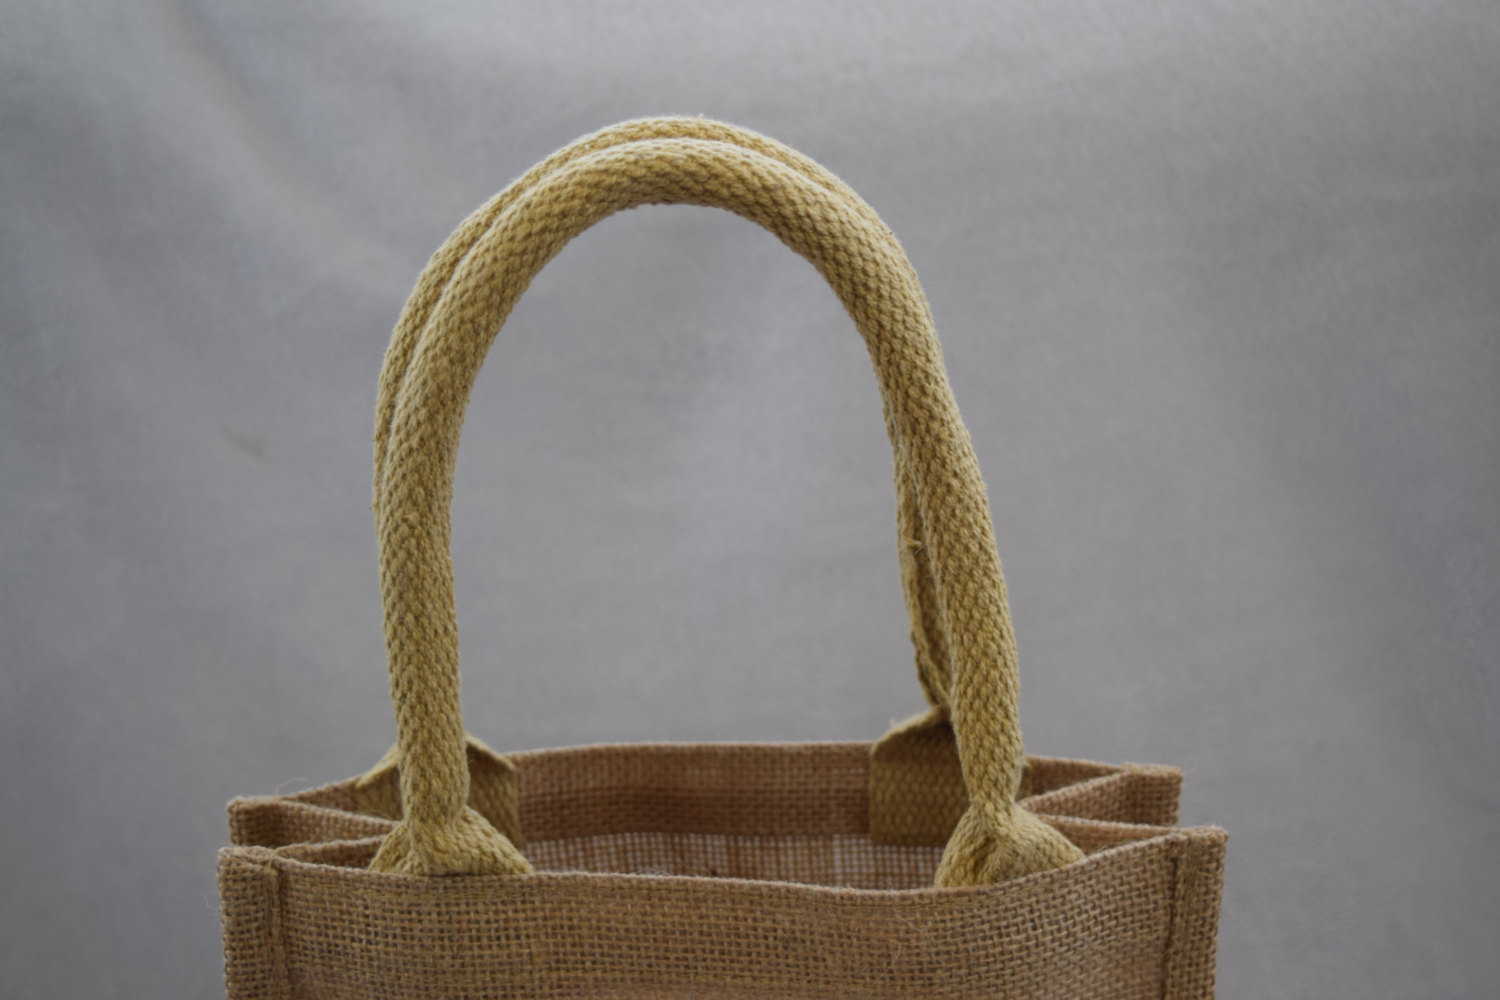 Wholesales good quality personalized natural burlap jute tote